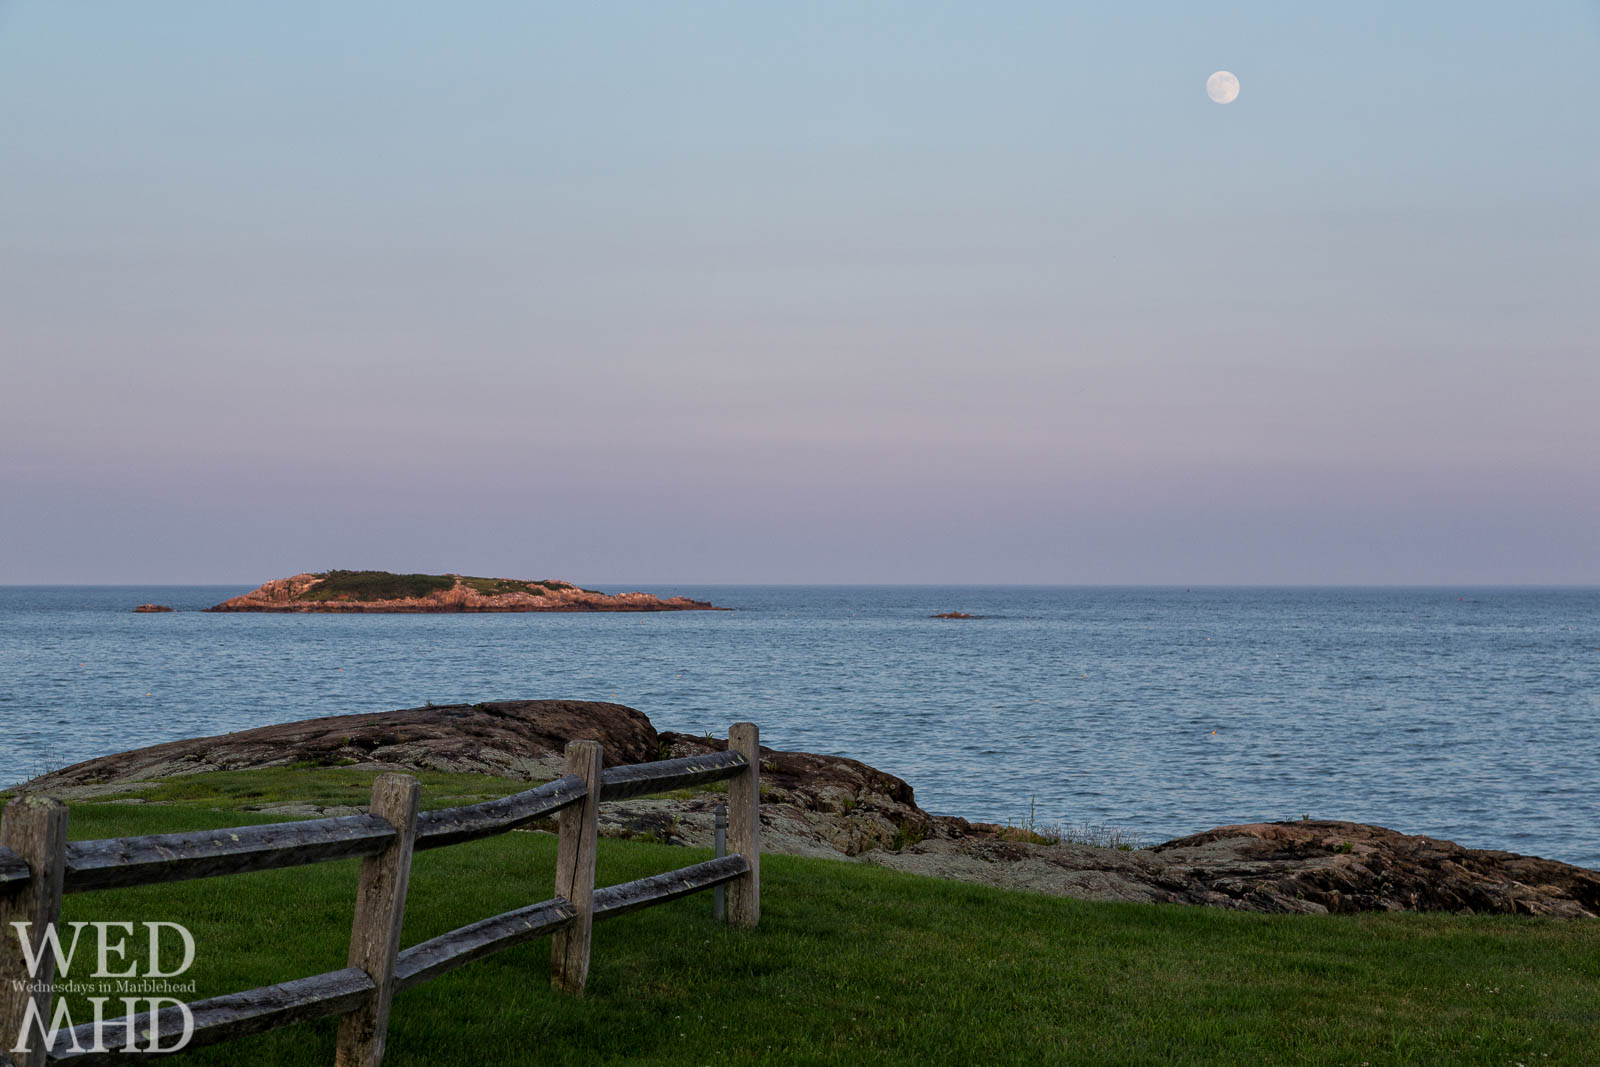 The moon rises over Rams Island in this view from Bass Rock Lane